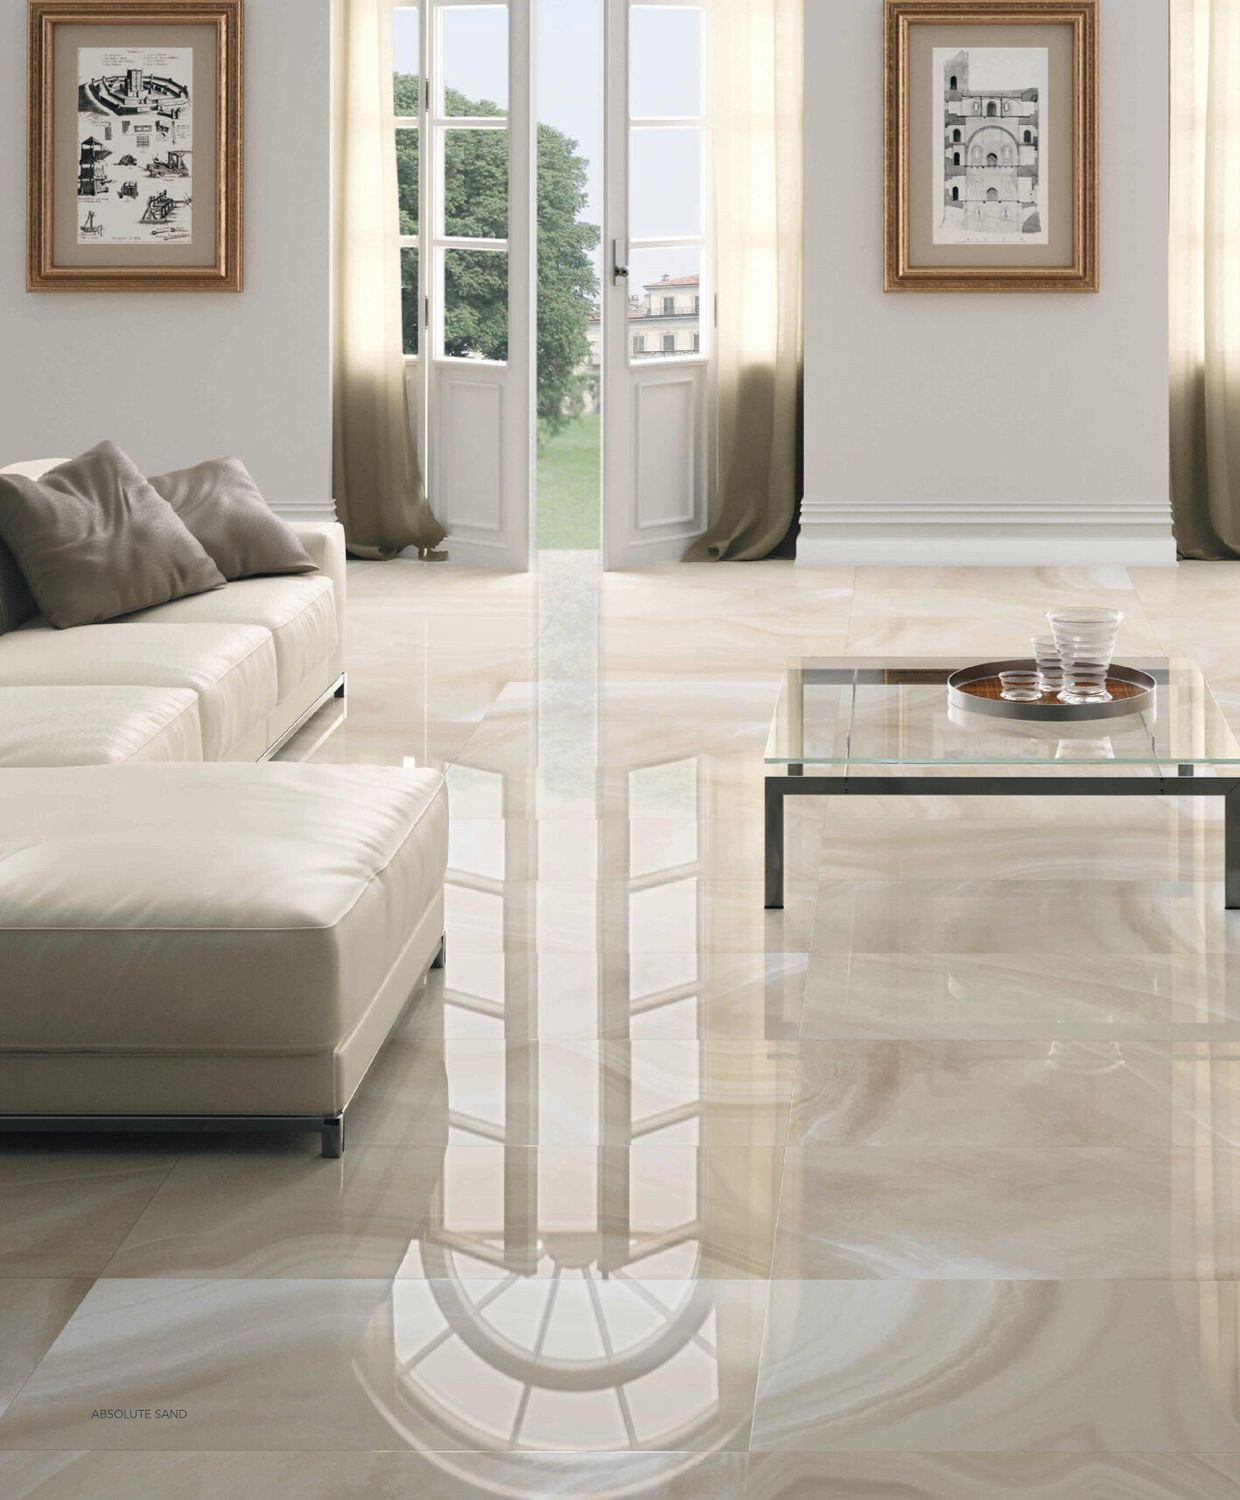 Indoor Tile Floor Porcelain Stoneware Victorian Pattern High Gloss Absolute